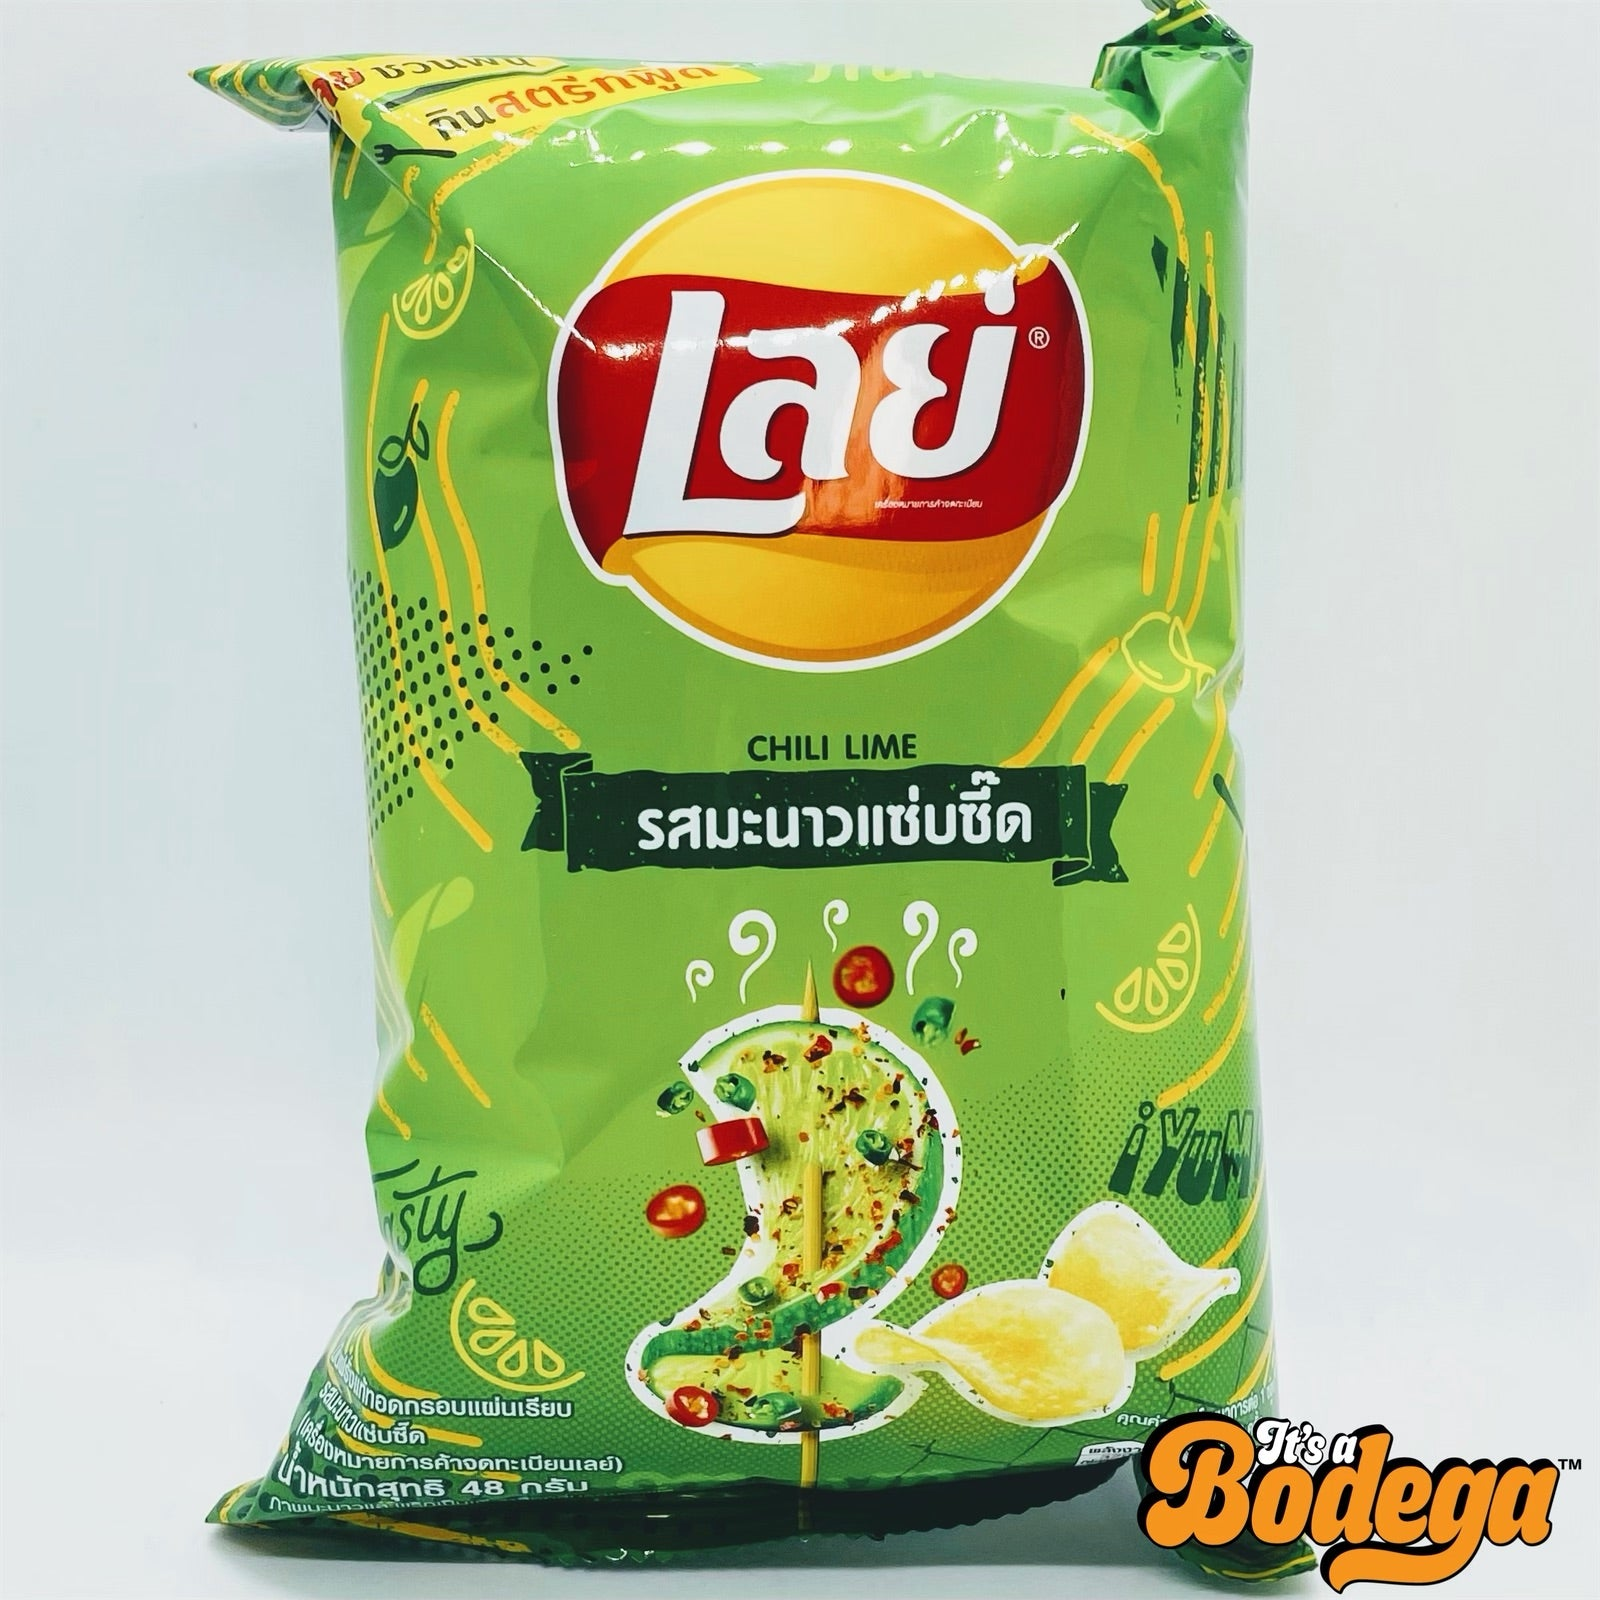 Lay's Chili Lime (Thailand)